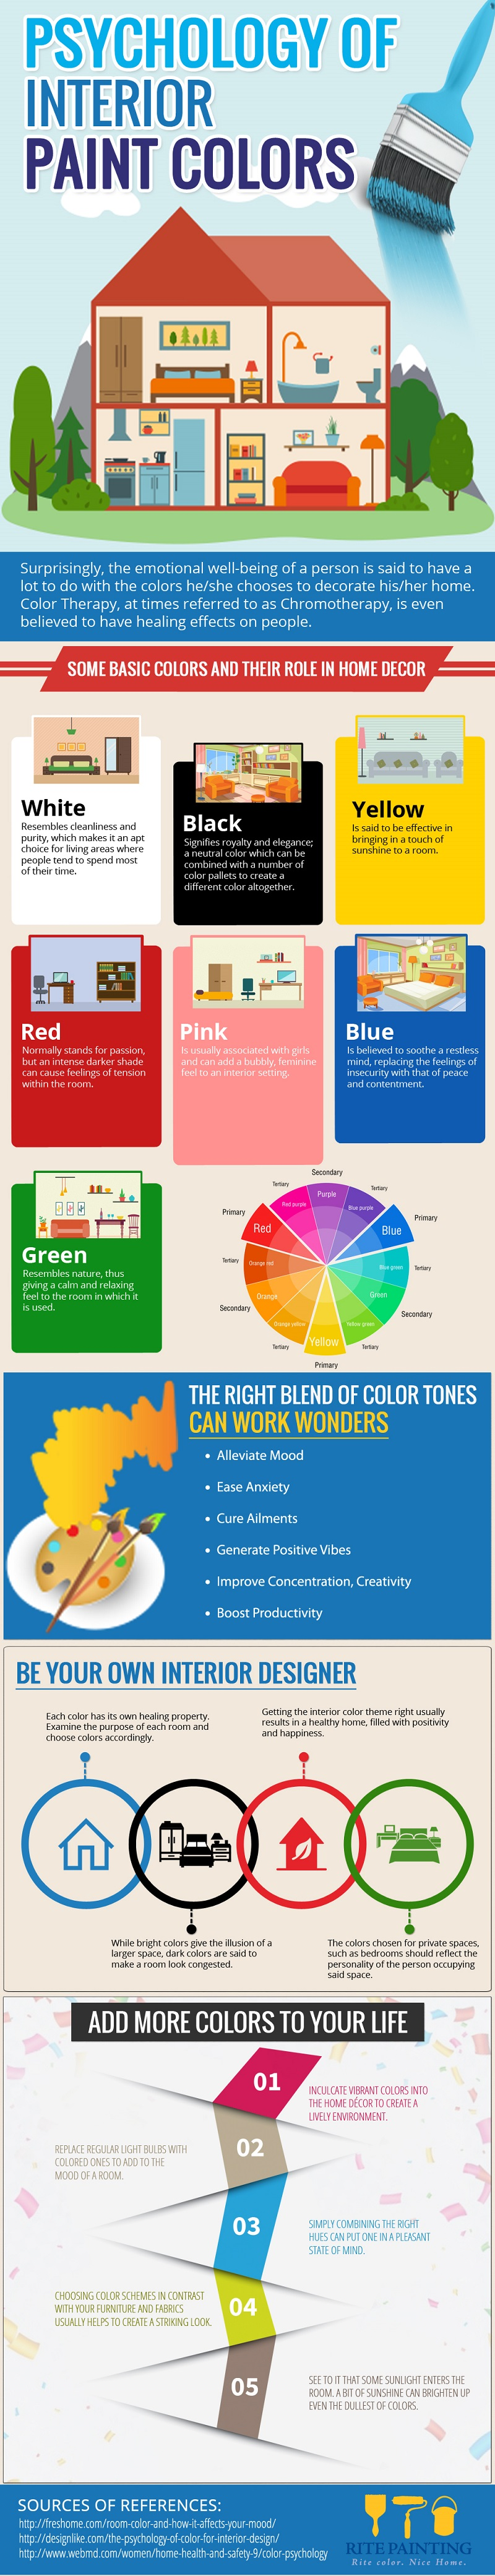 Psychology Of Interior Paint Colors